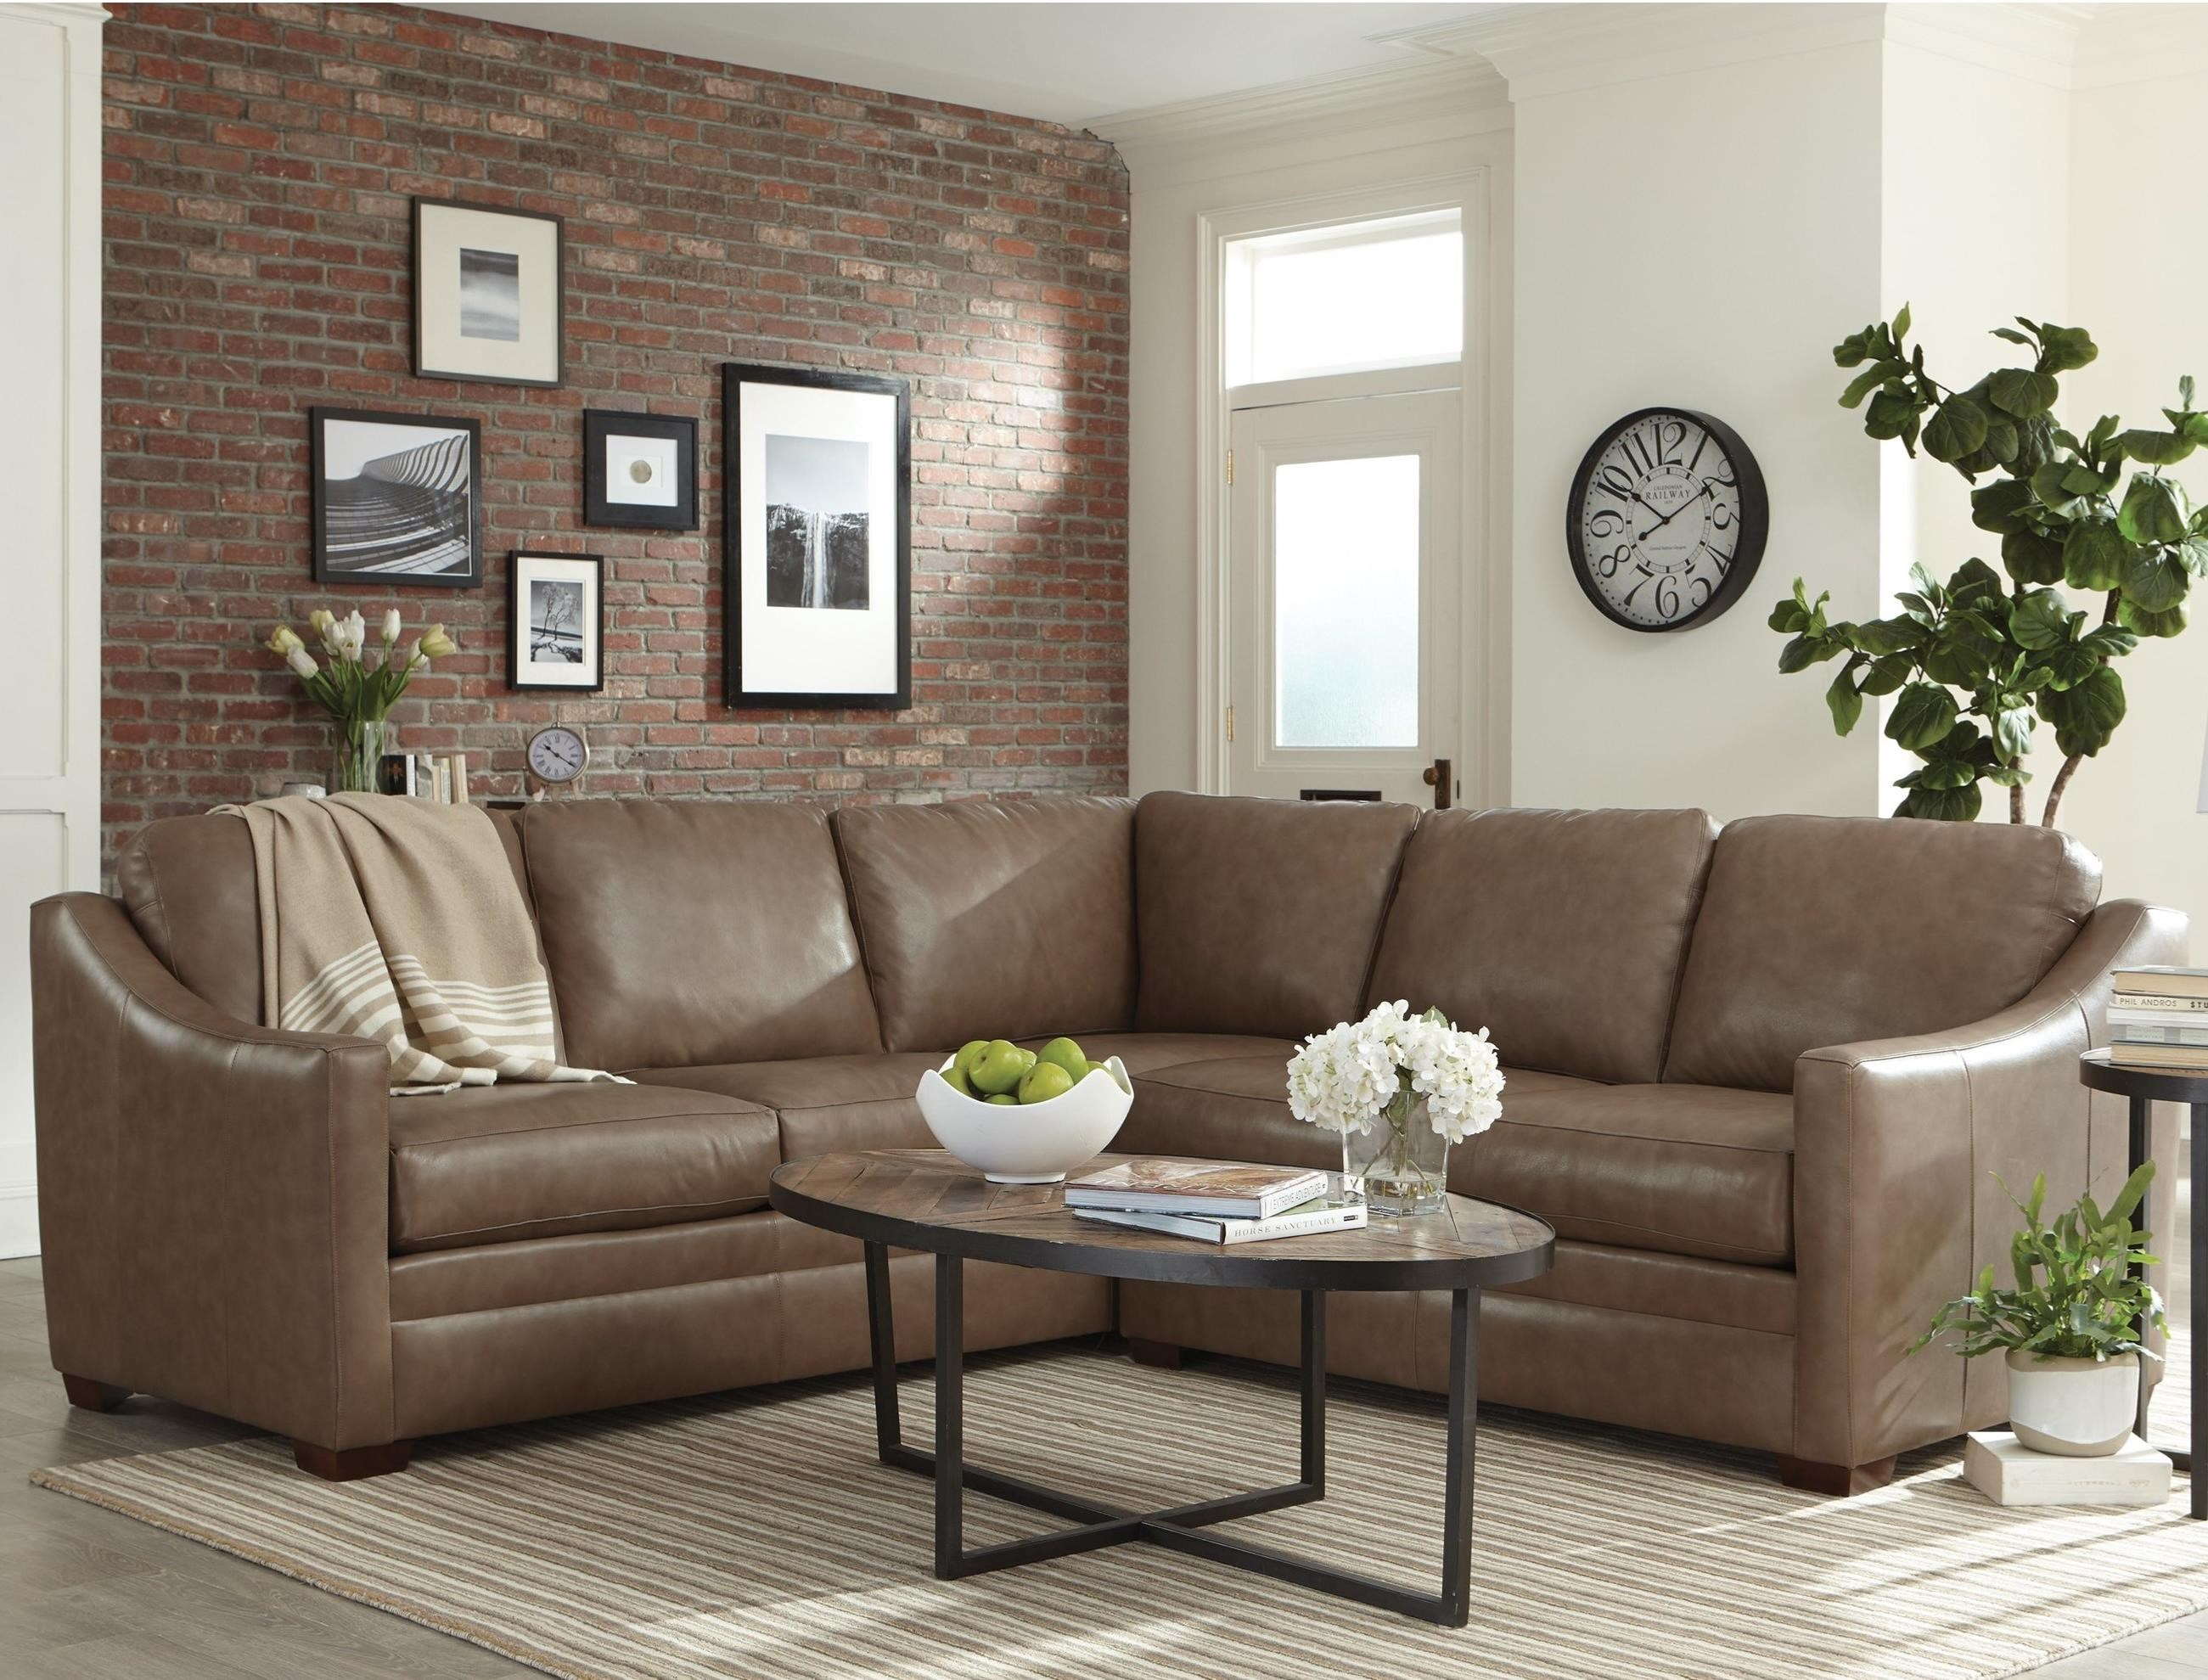 Craftmaster L9 Custom   Design Options Customizable 2 Piece Leather Sectional  Sofa With Track Arms